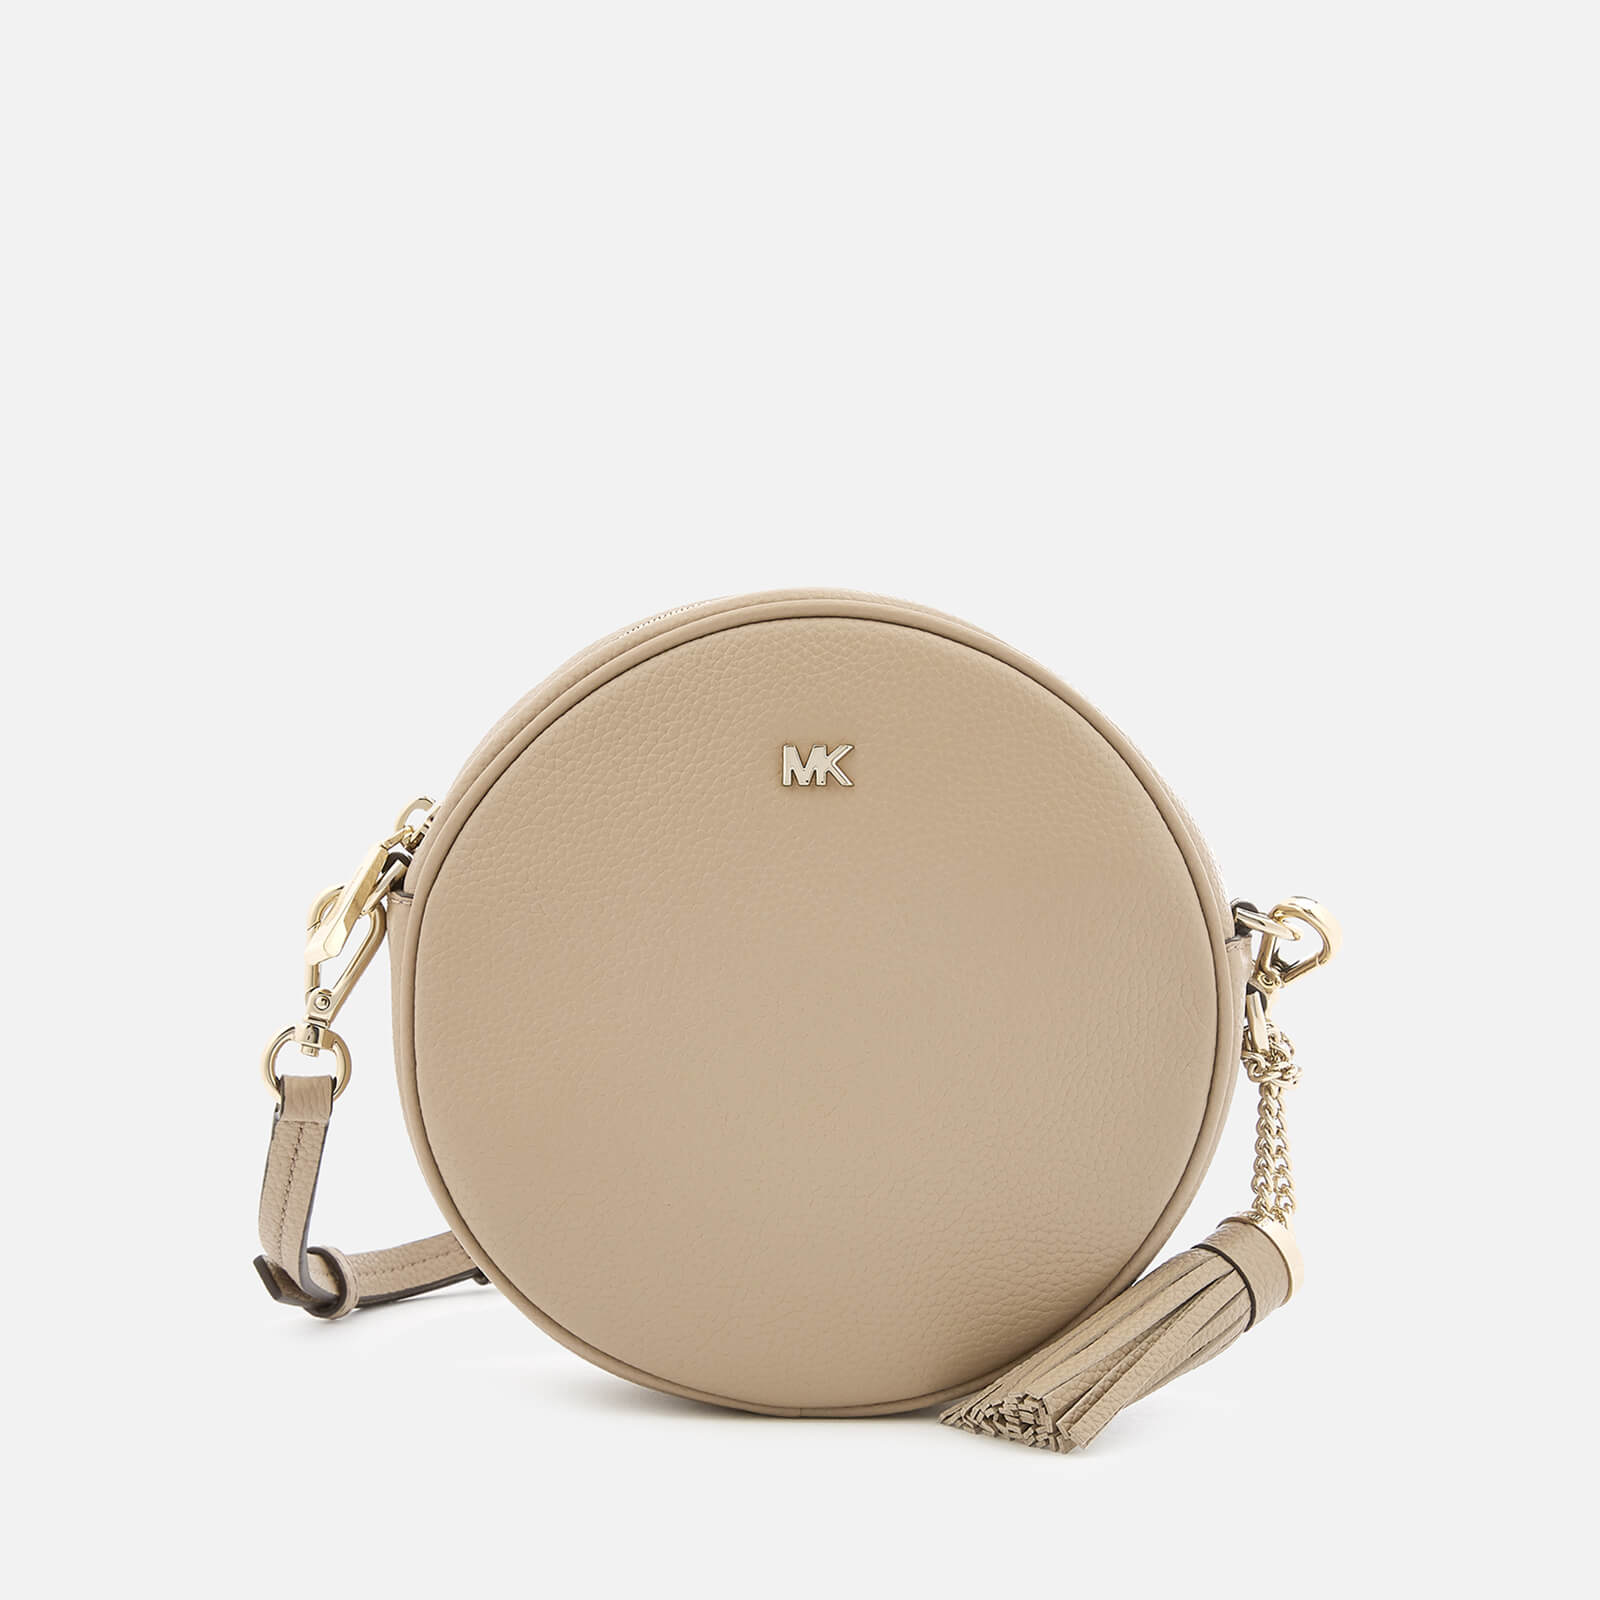 03529e621acd MICHAEL MICHAEL KORS Women's Small Grain Pebble Leather Canteen Bag -  Truffle - Free UK Delivery over £50